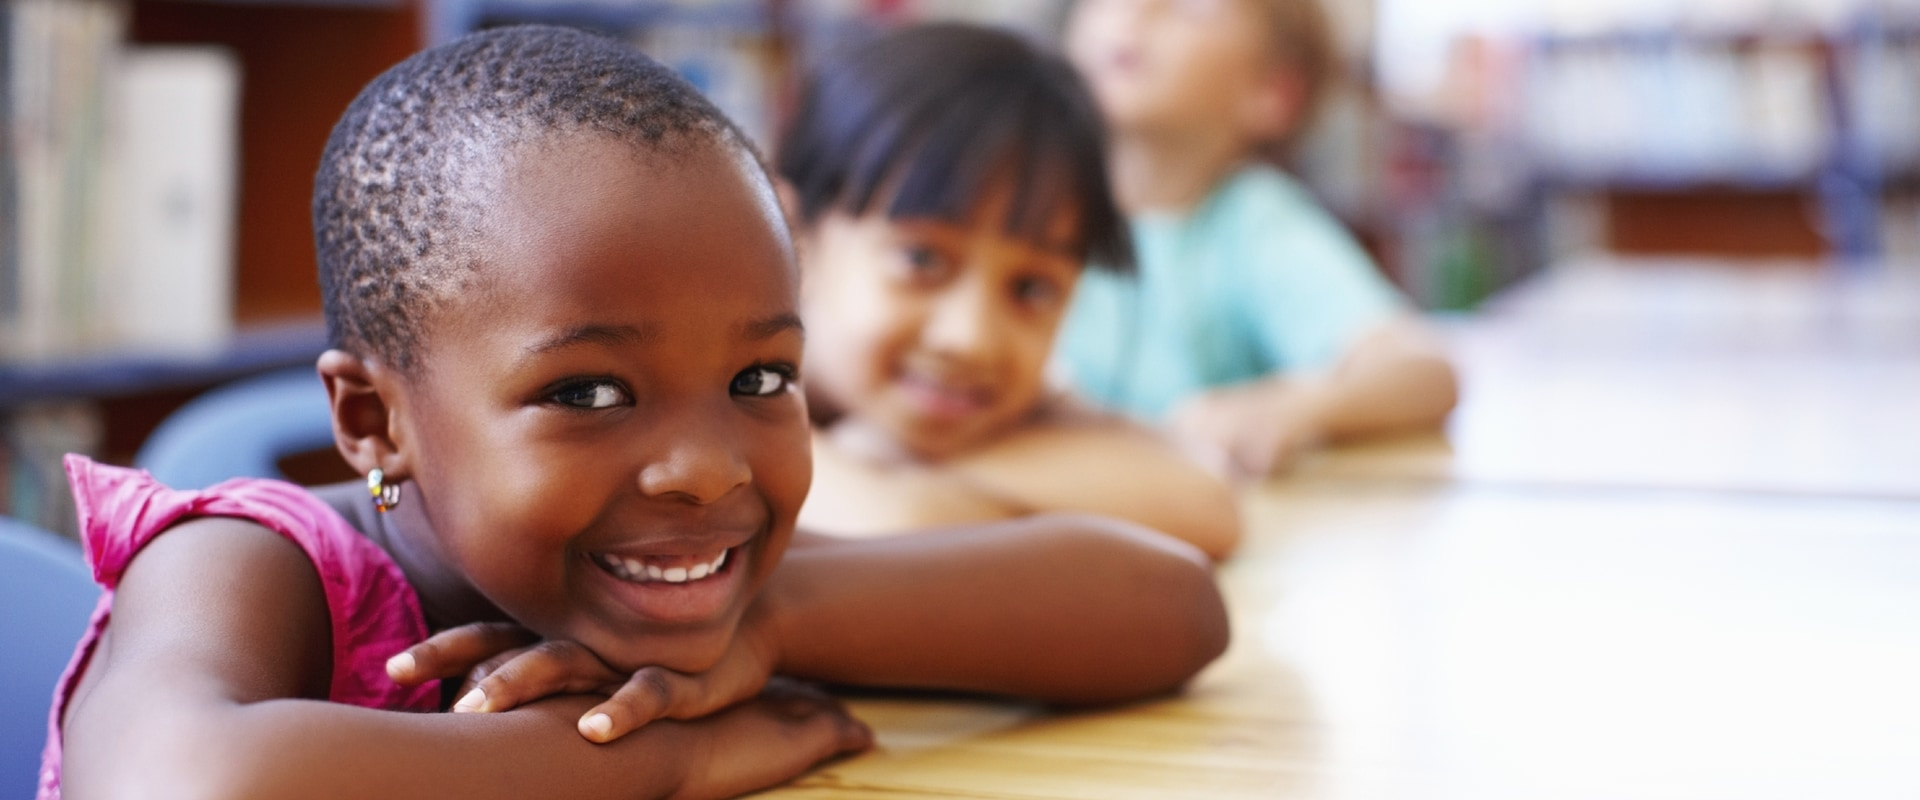 Young children sitting and smiling at their desks.